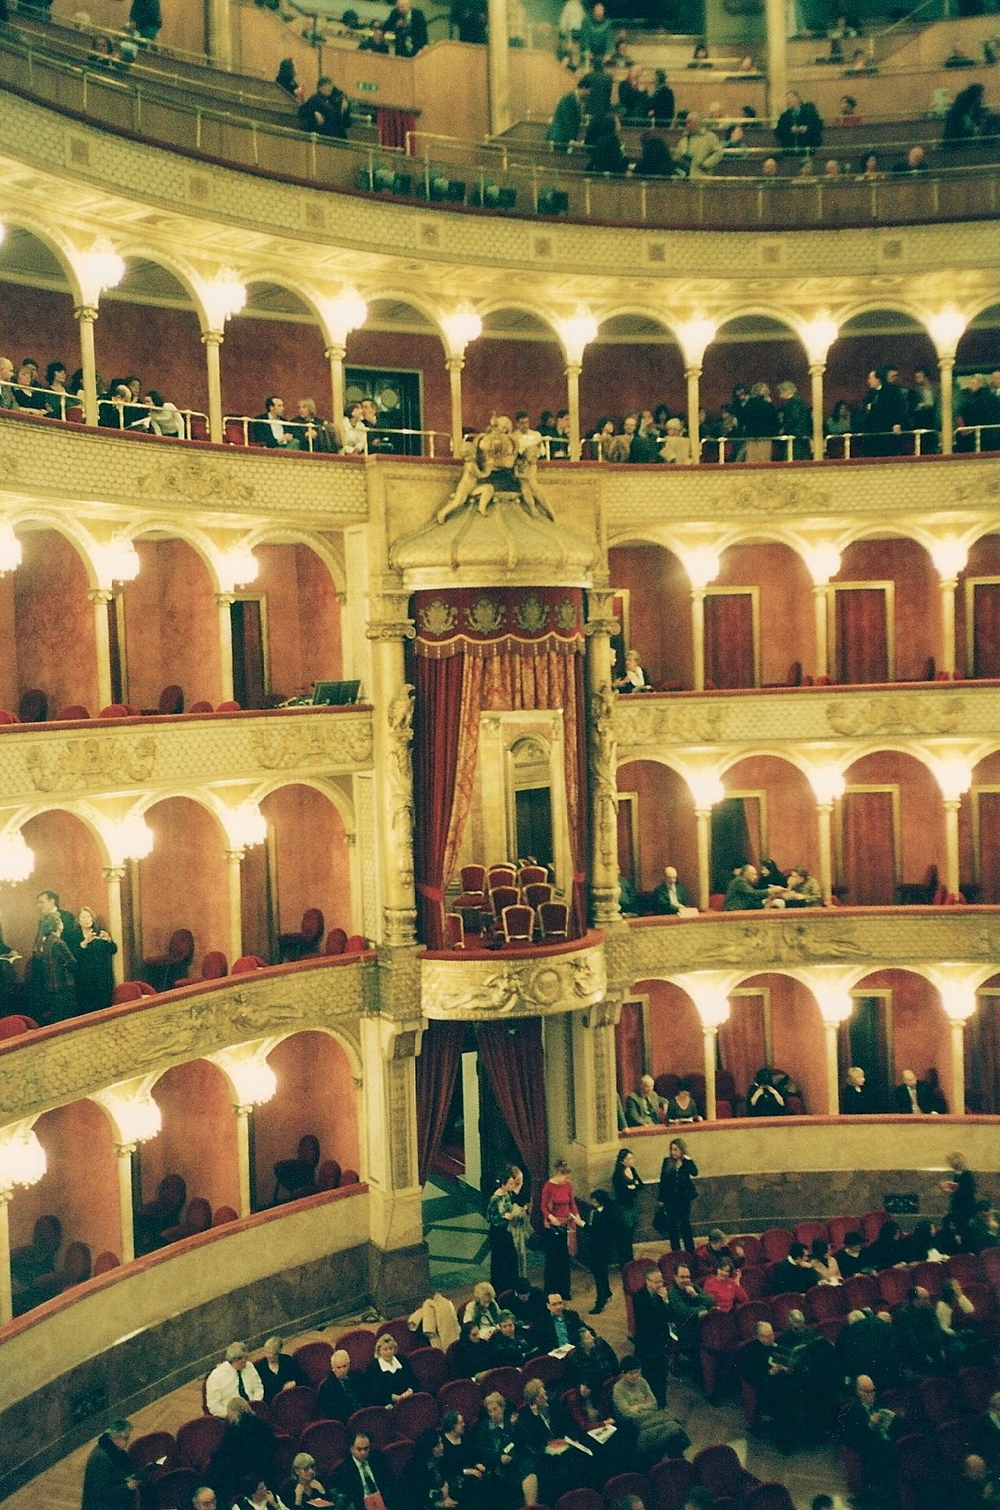 The opera house in Rome, Italy